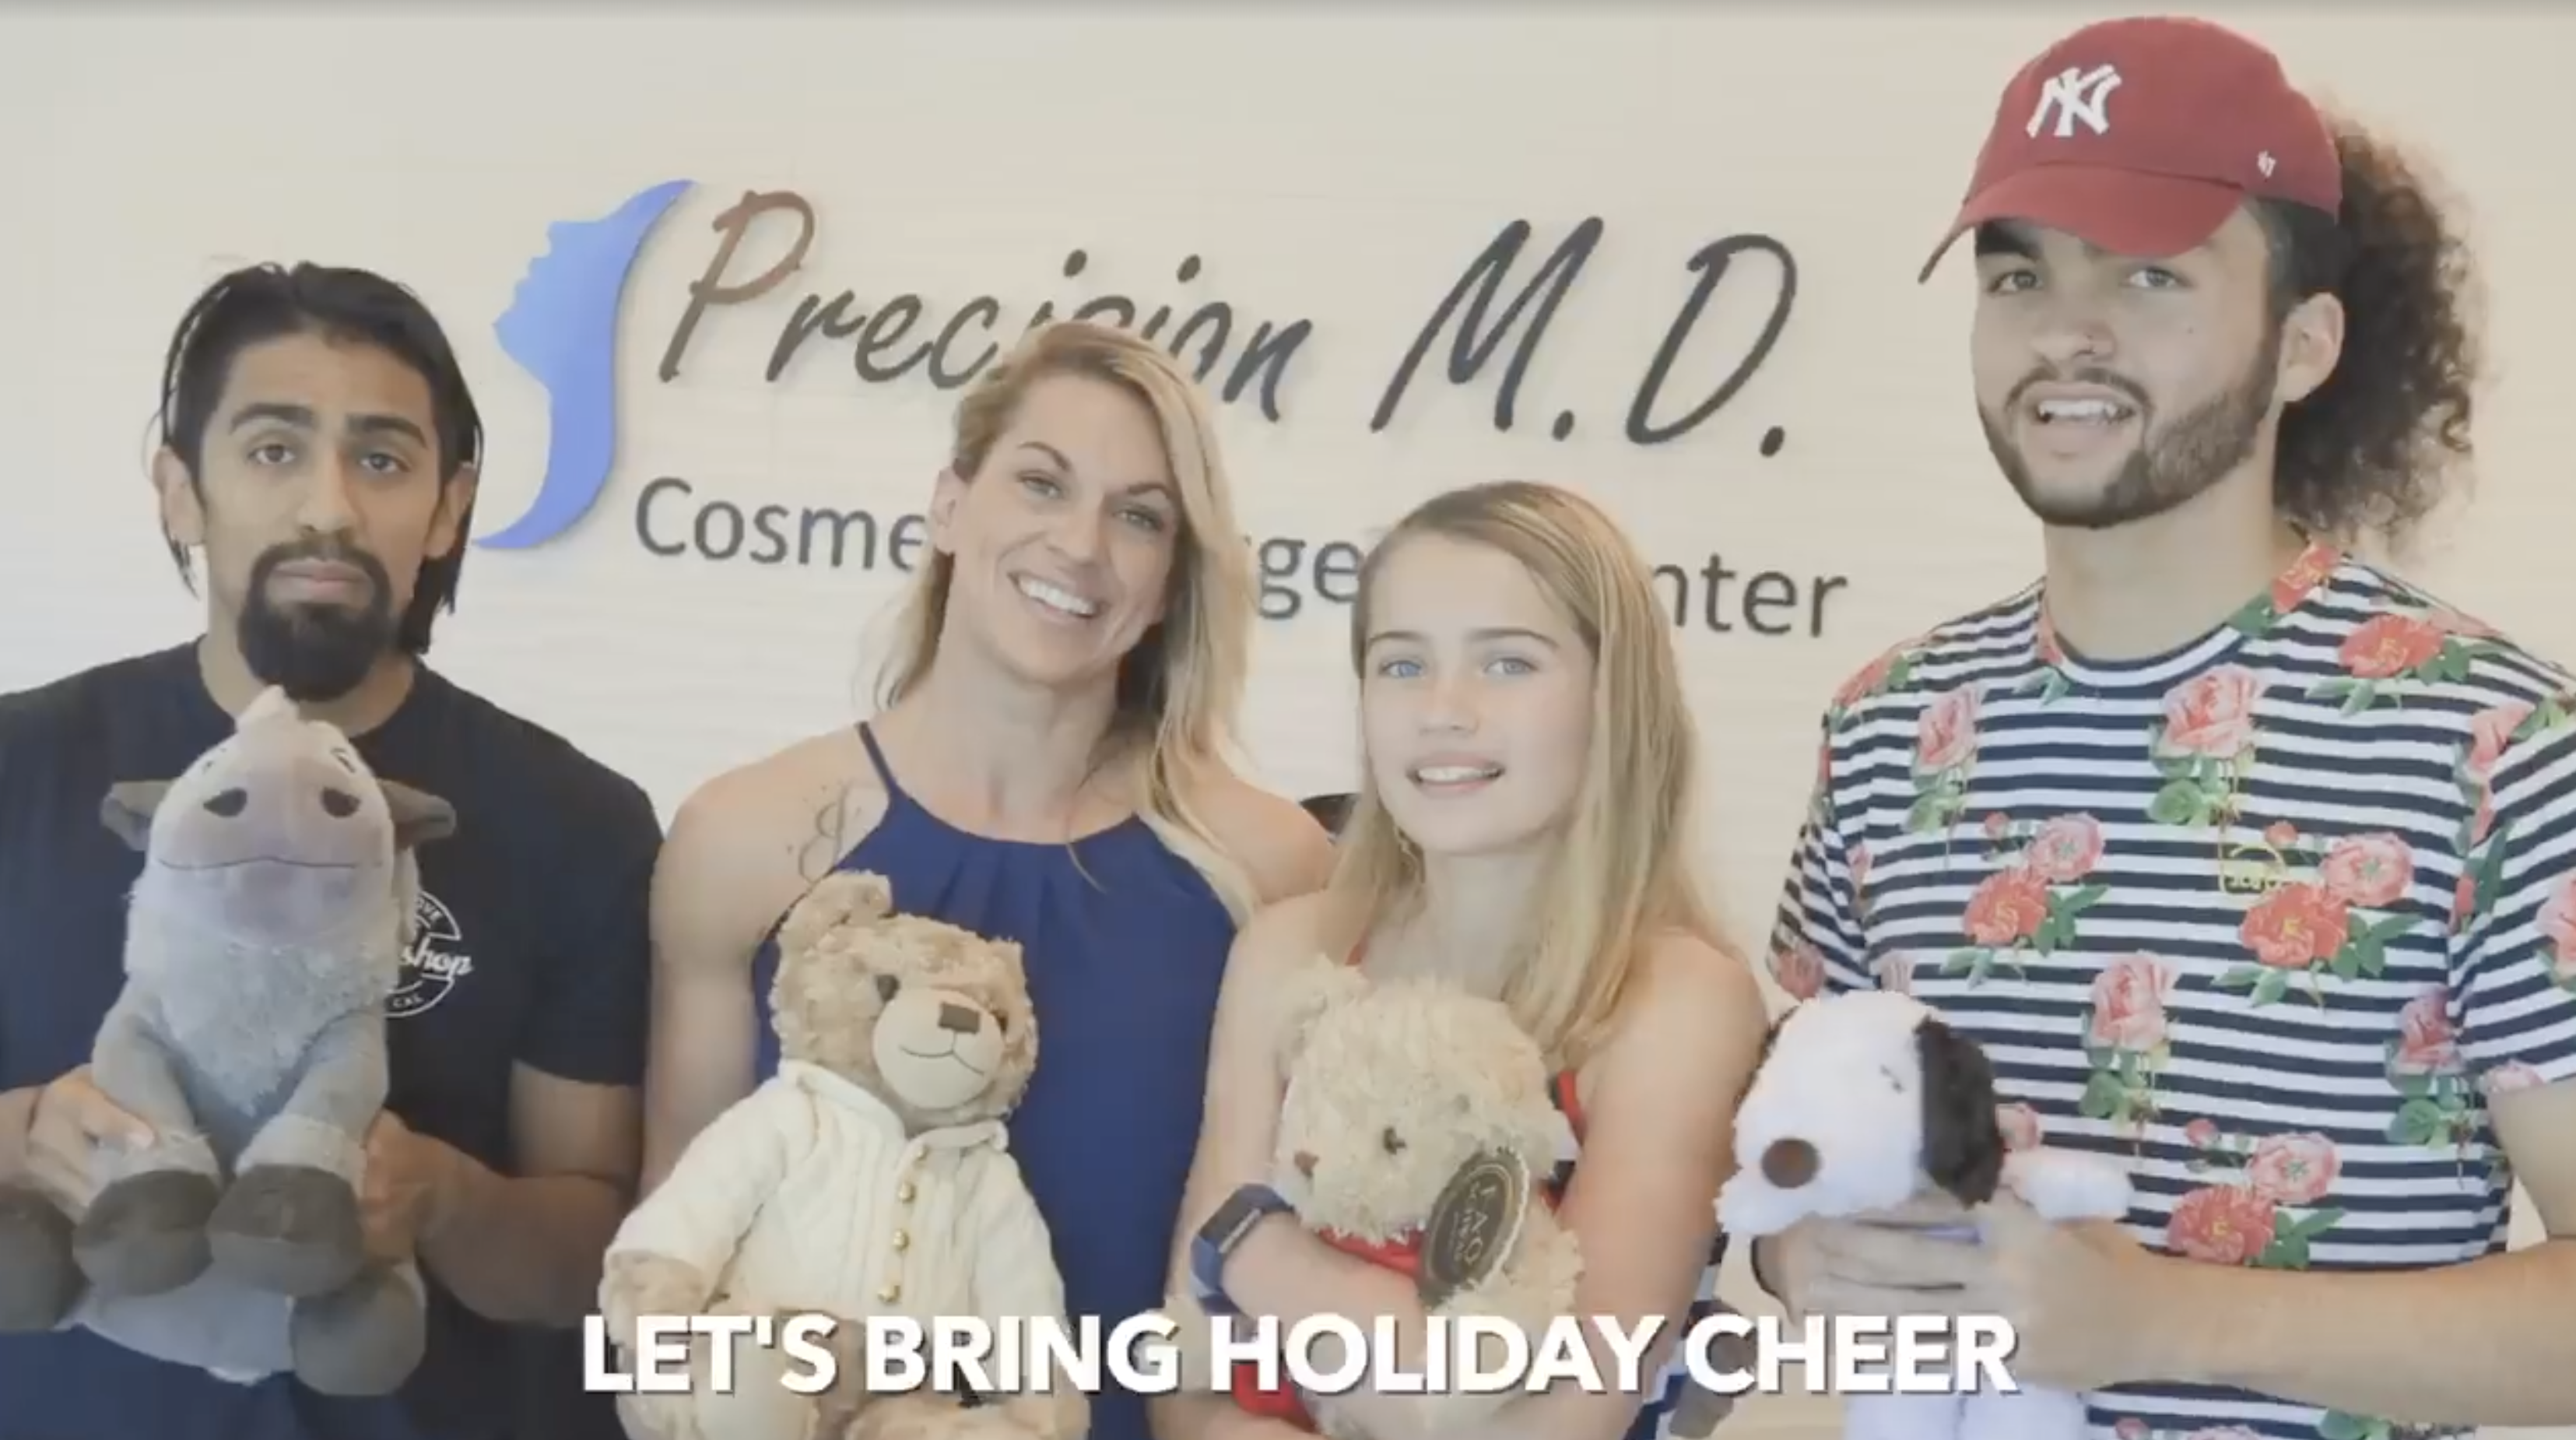 Precision M.D. Cosmetic Surgery Center TOY DRIVE! for FosterHope Sacramento